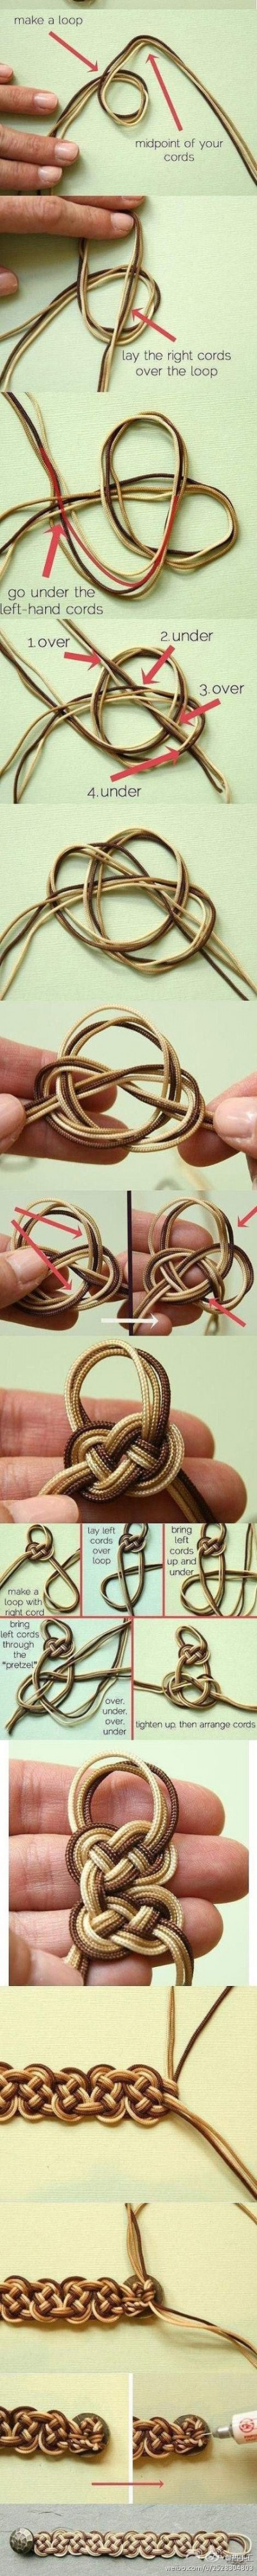 How to make your own beautiful bracelet step by step DIY tutorial picture instructions